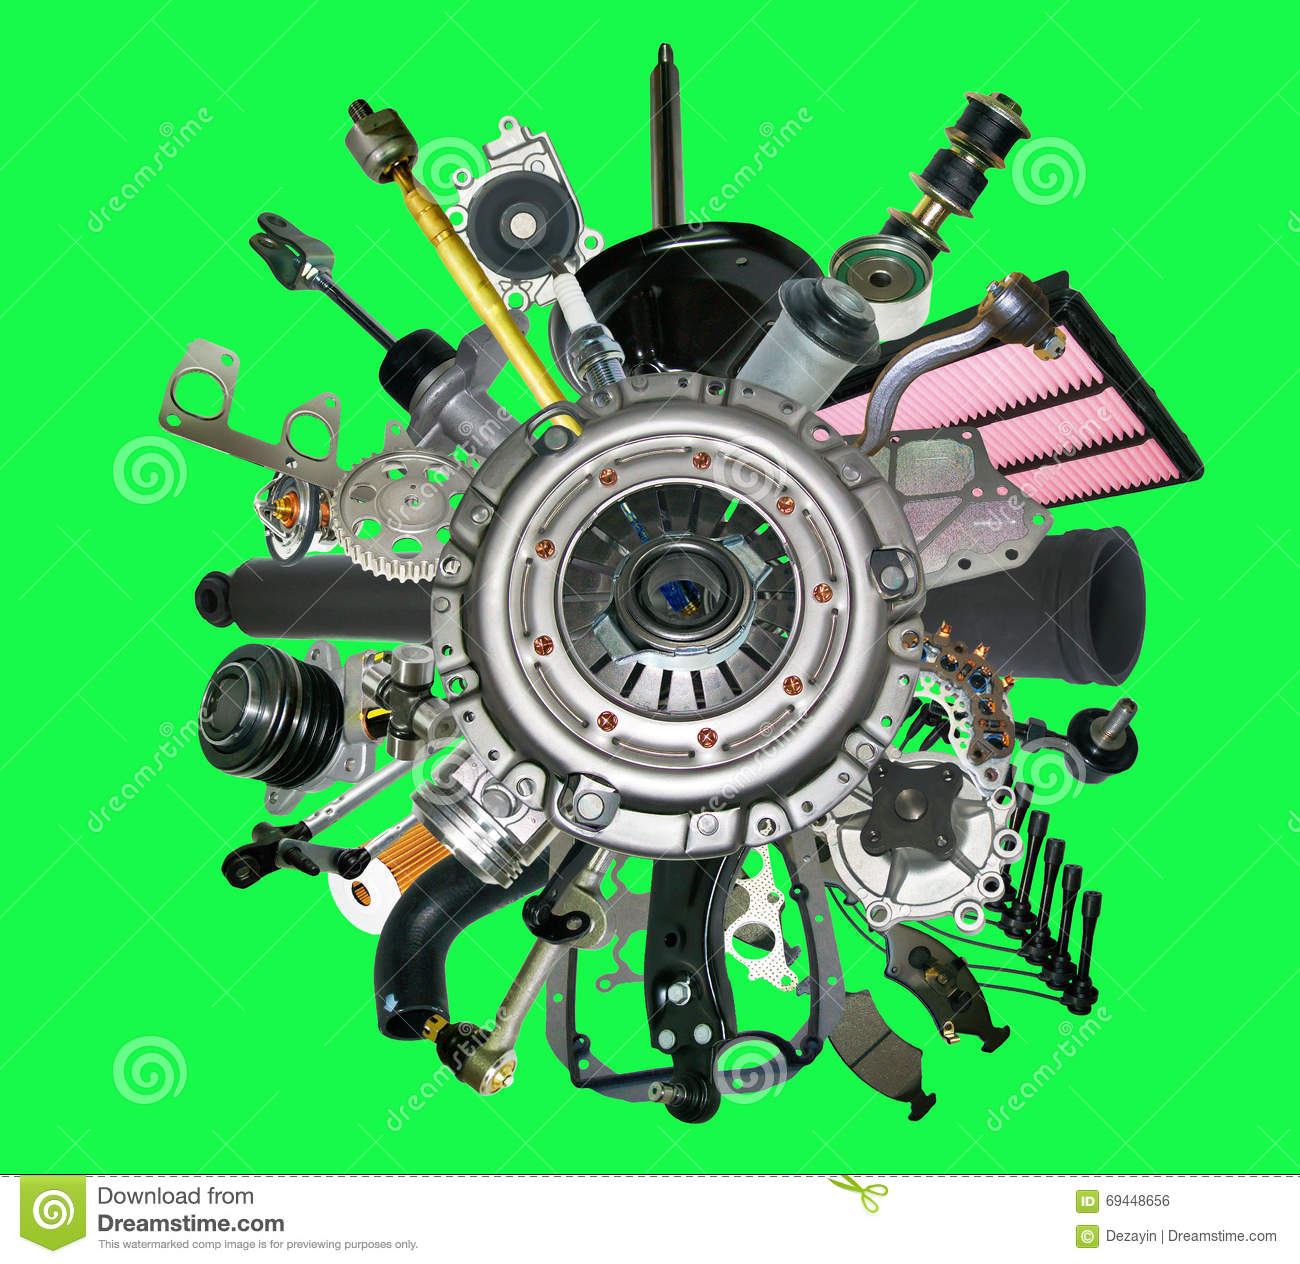 New Car Parts : Many new spare parts for a car isolated on green